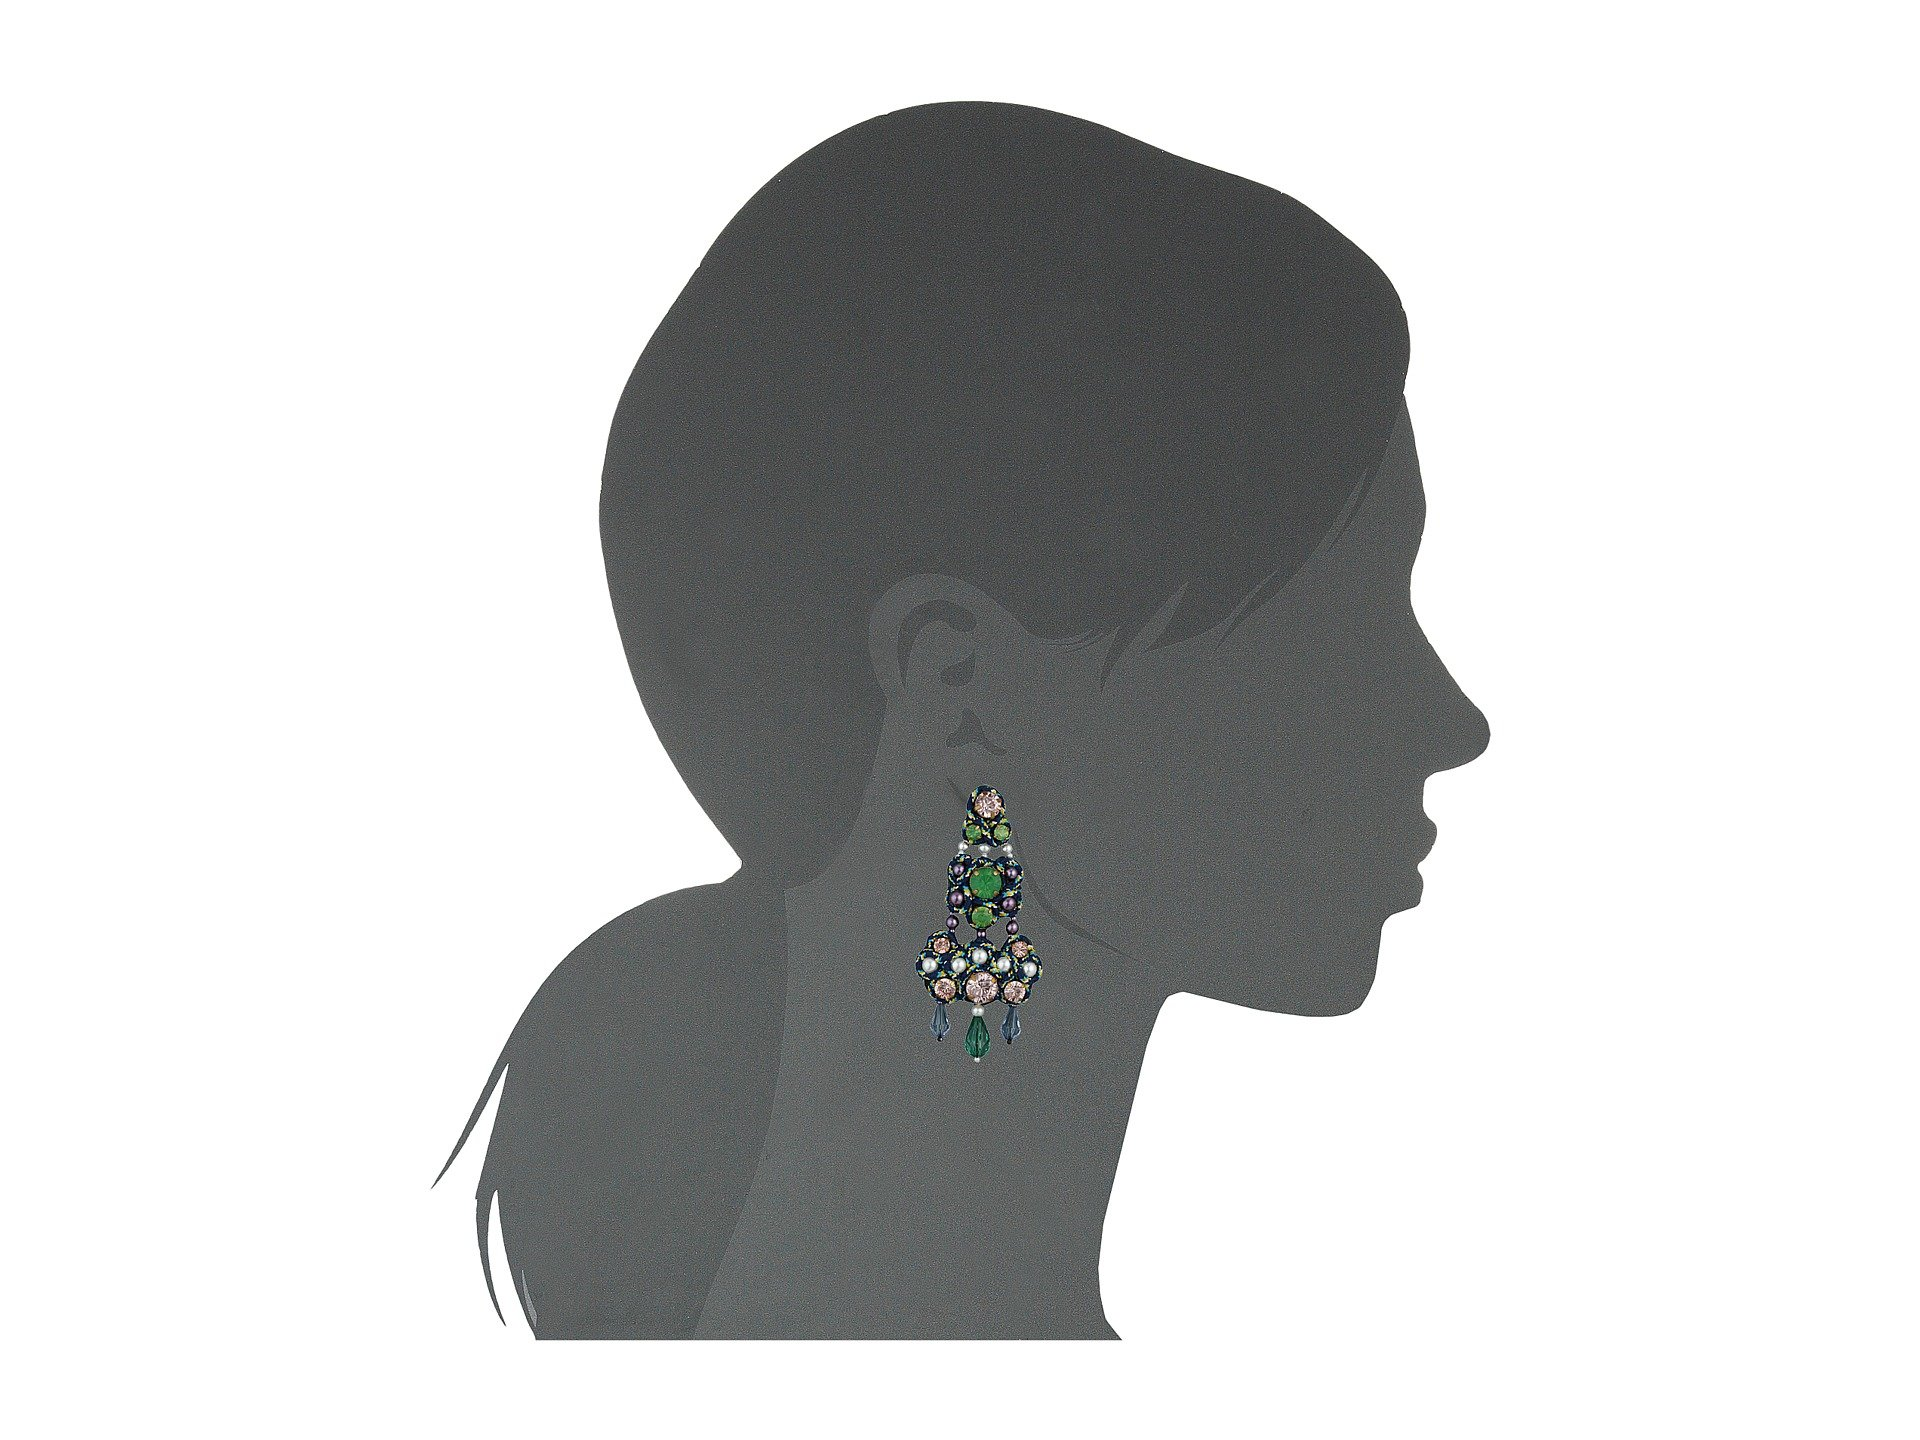 Tory burch beaded chandelier earrings at zappos mozeypictures Choice Image